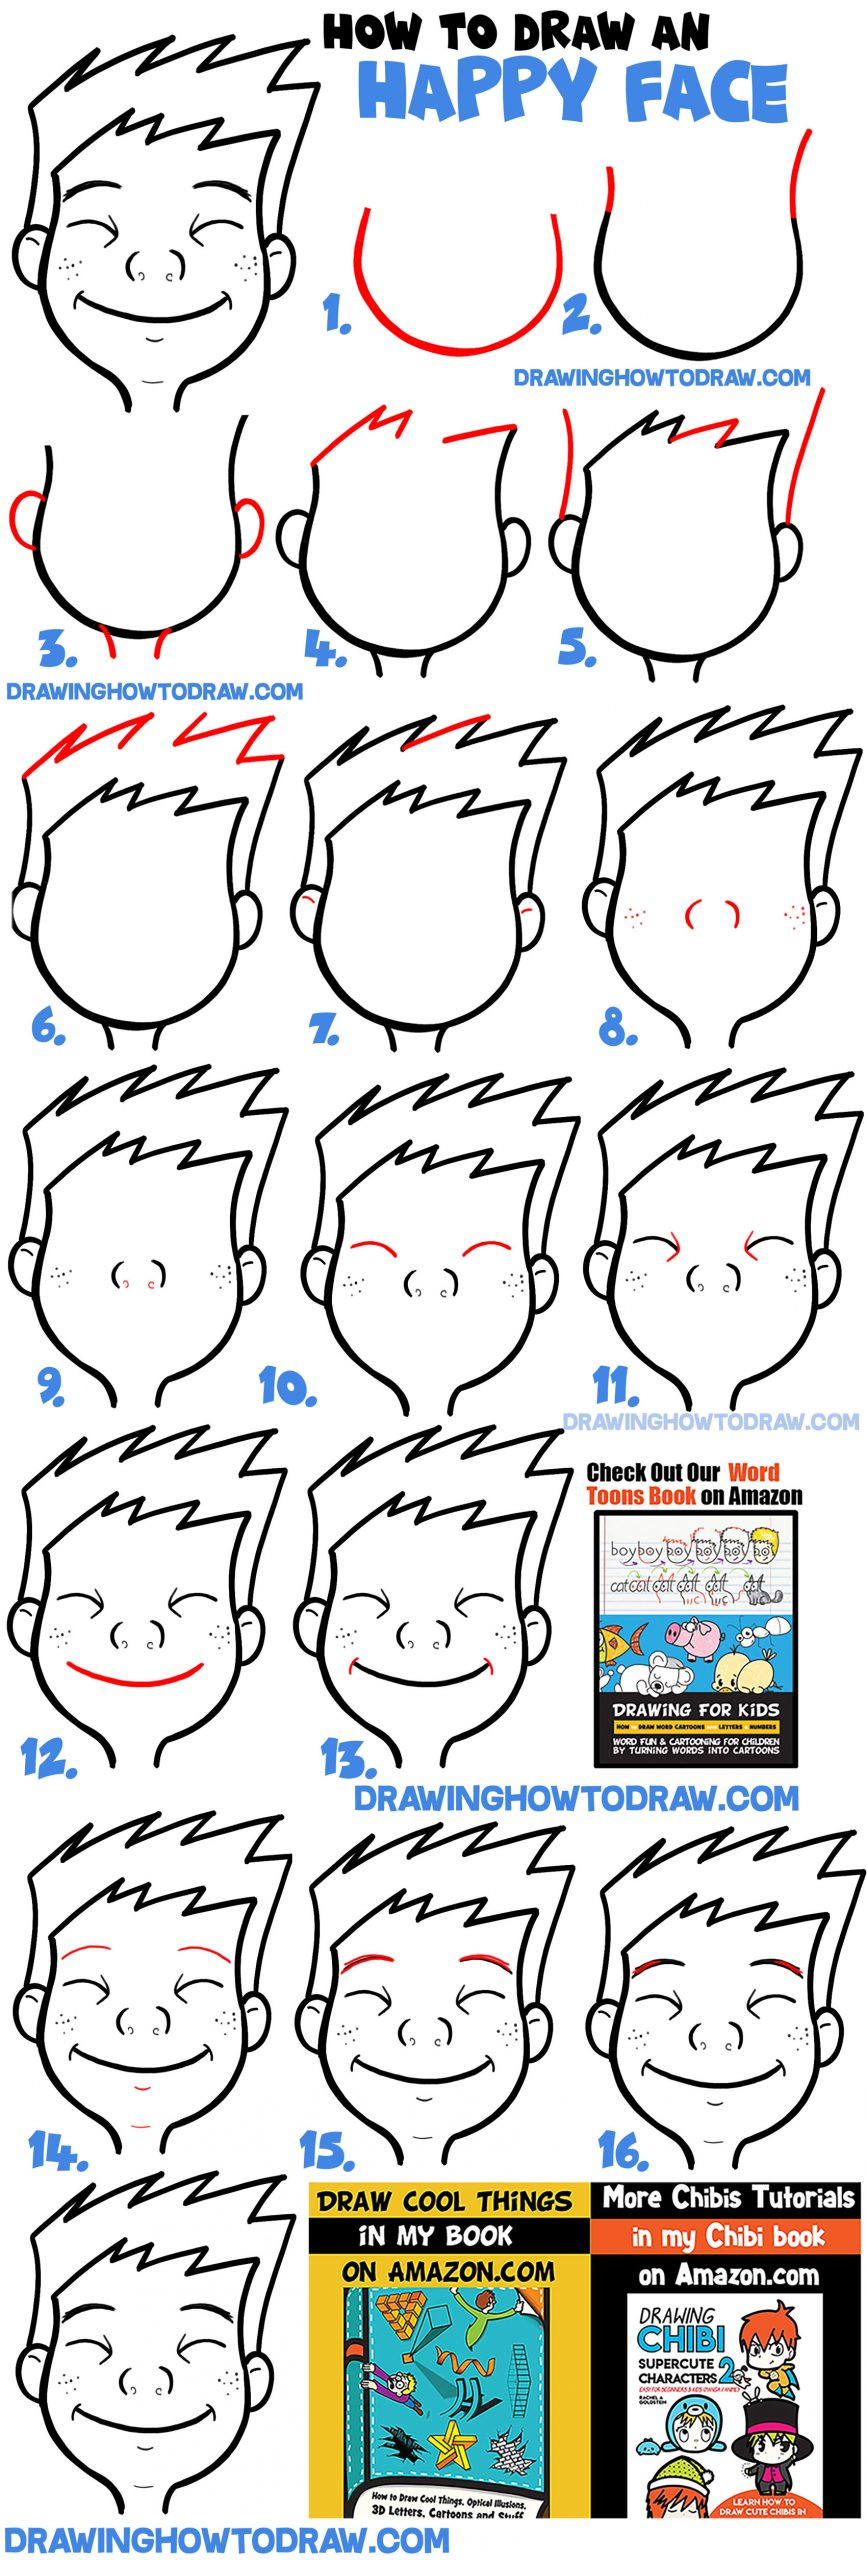 how to draw cartoon smiling happy face - easy step by step expressions